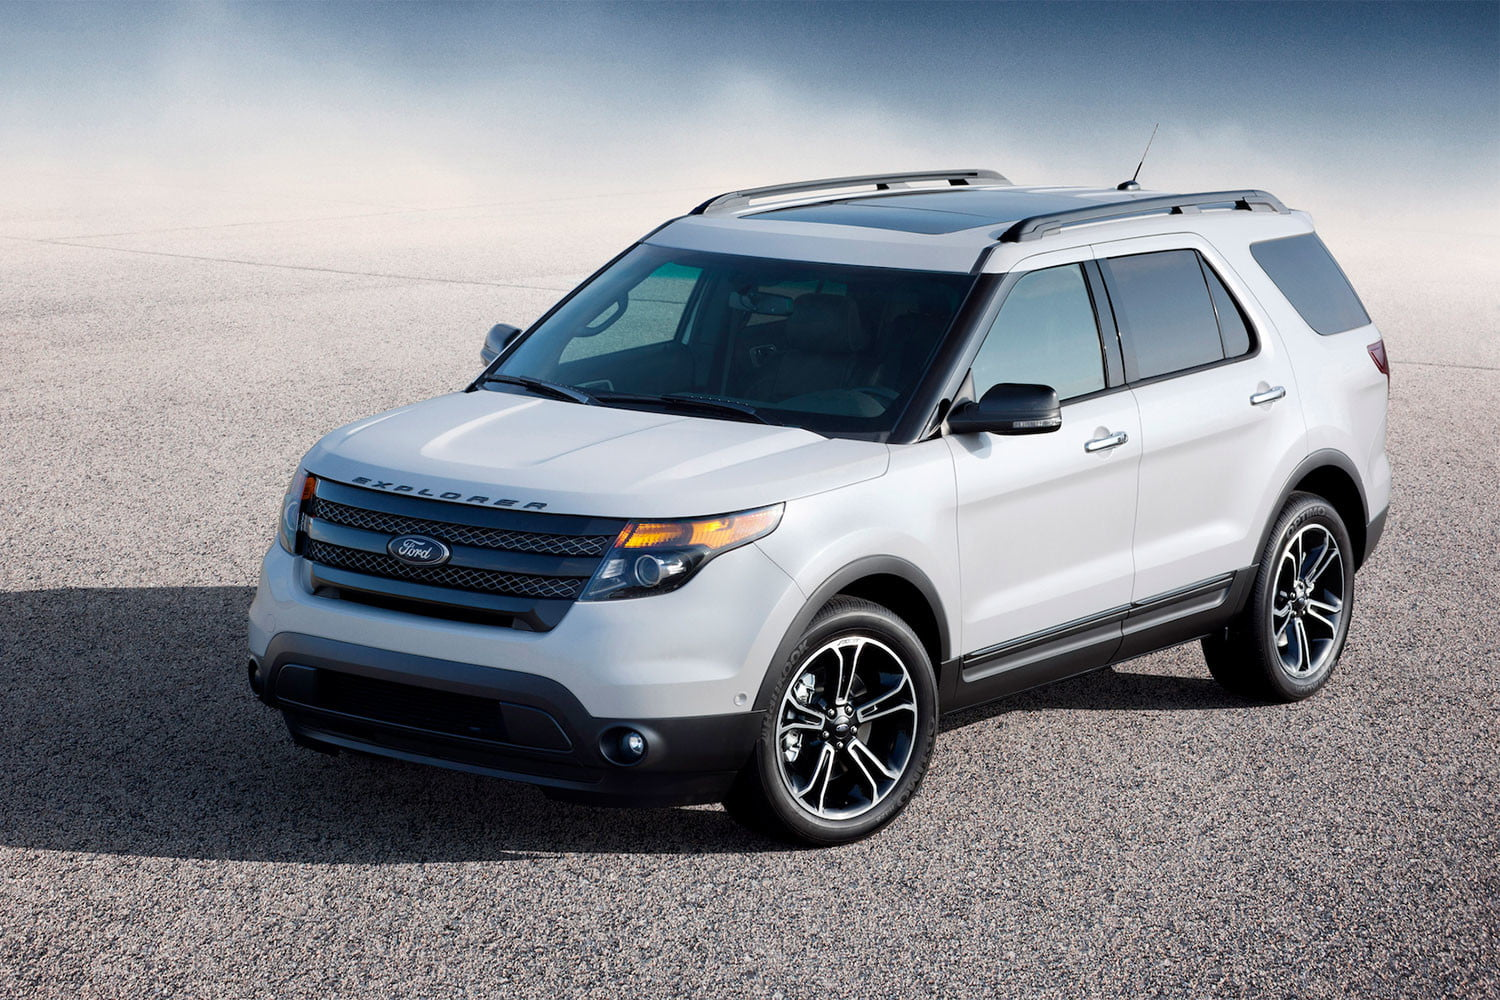 Ford Recalls 1 3M Explorer and F-150 Vehicles Over Safety